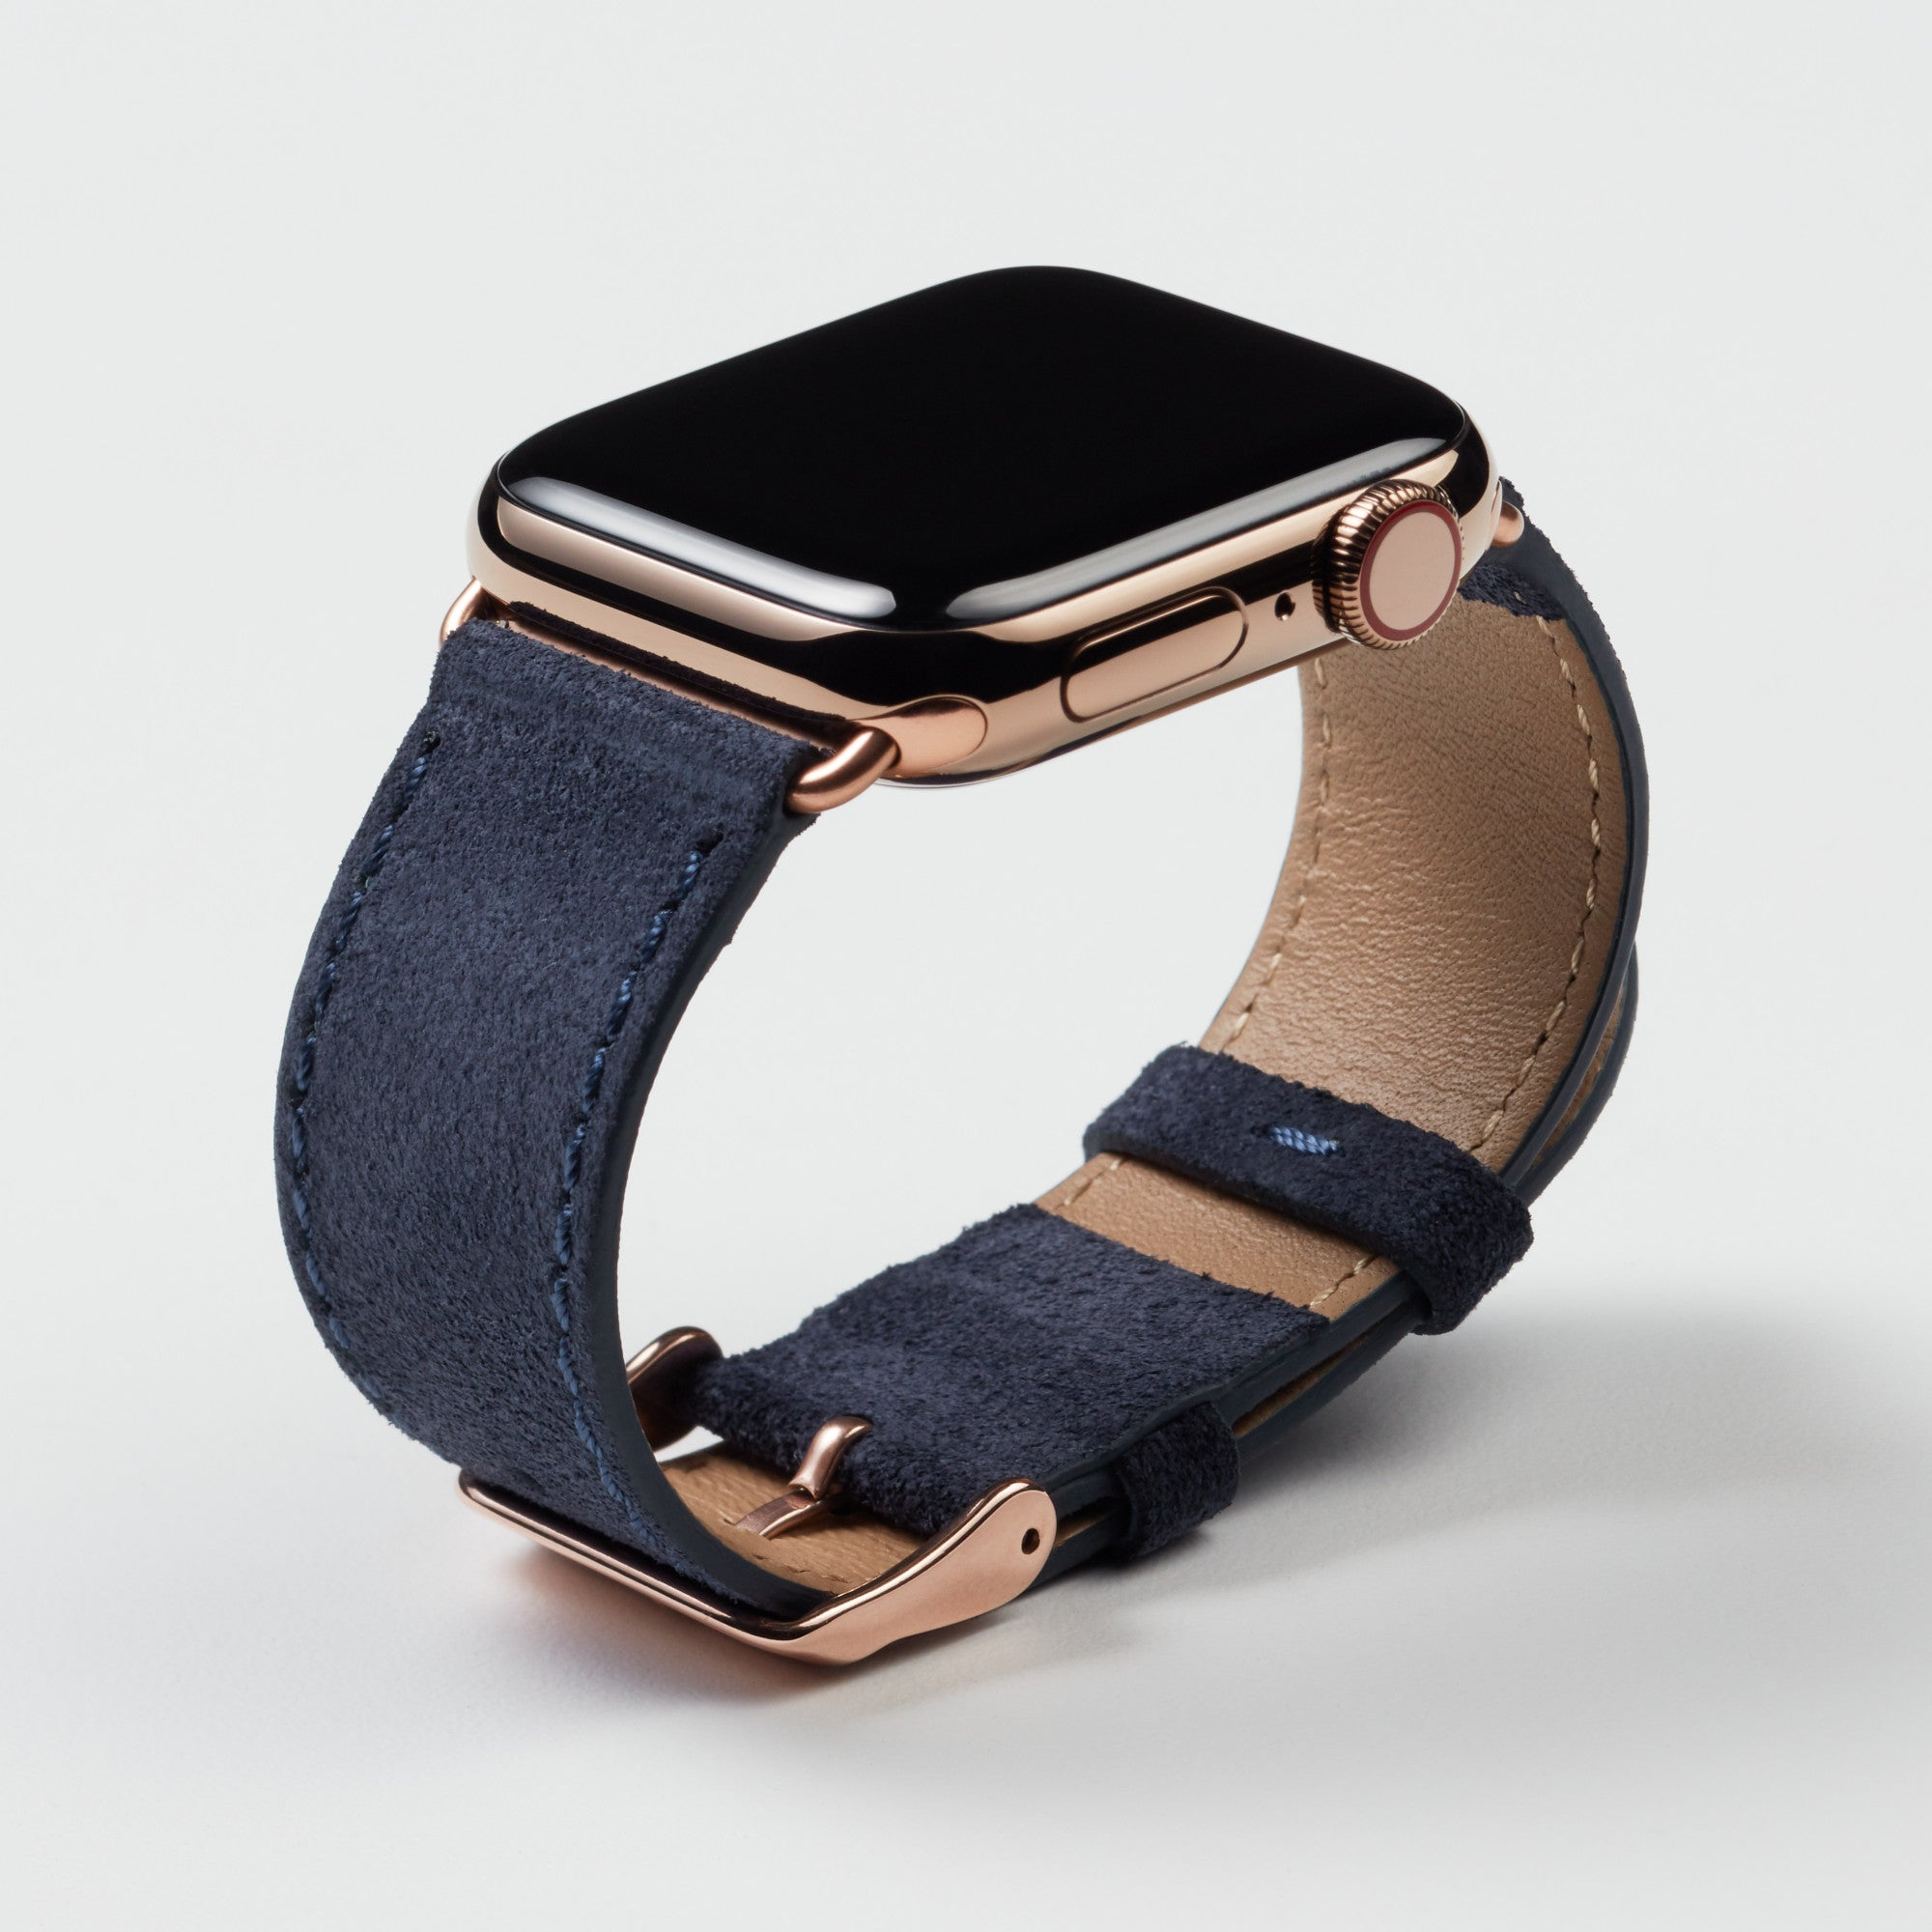 Pin and Buckle Apple Watch Bands - Velour - Suede Leather Apple Watch Band - Azure Blue - Gold